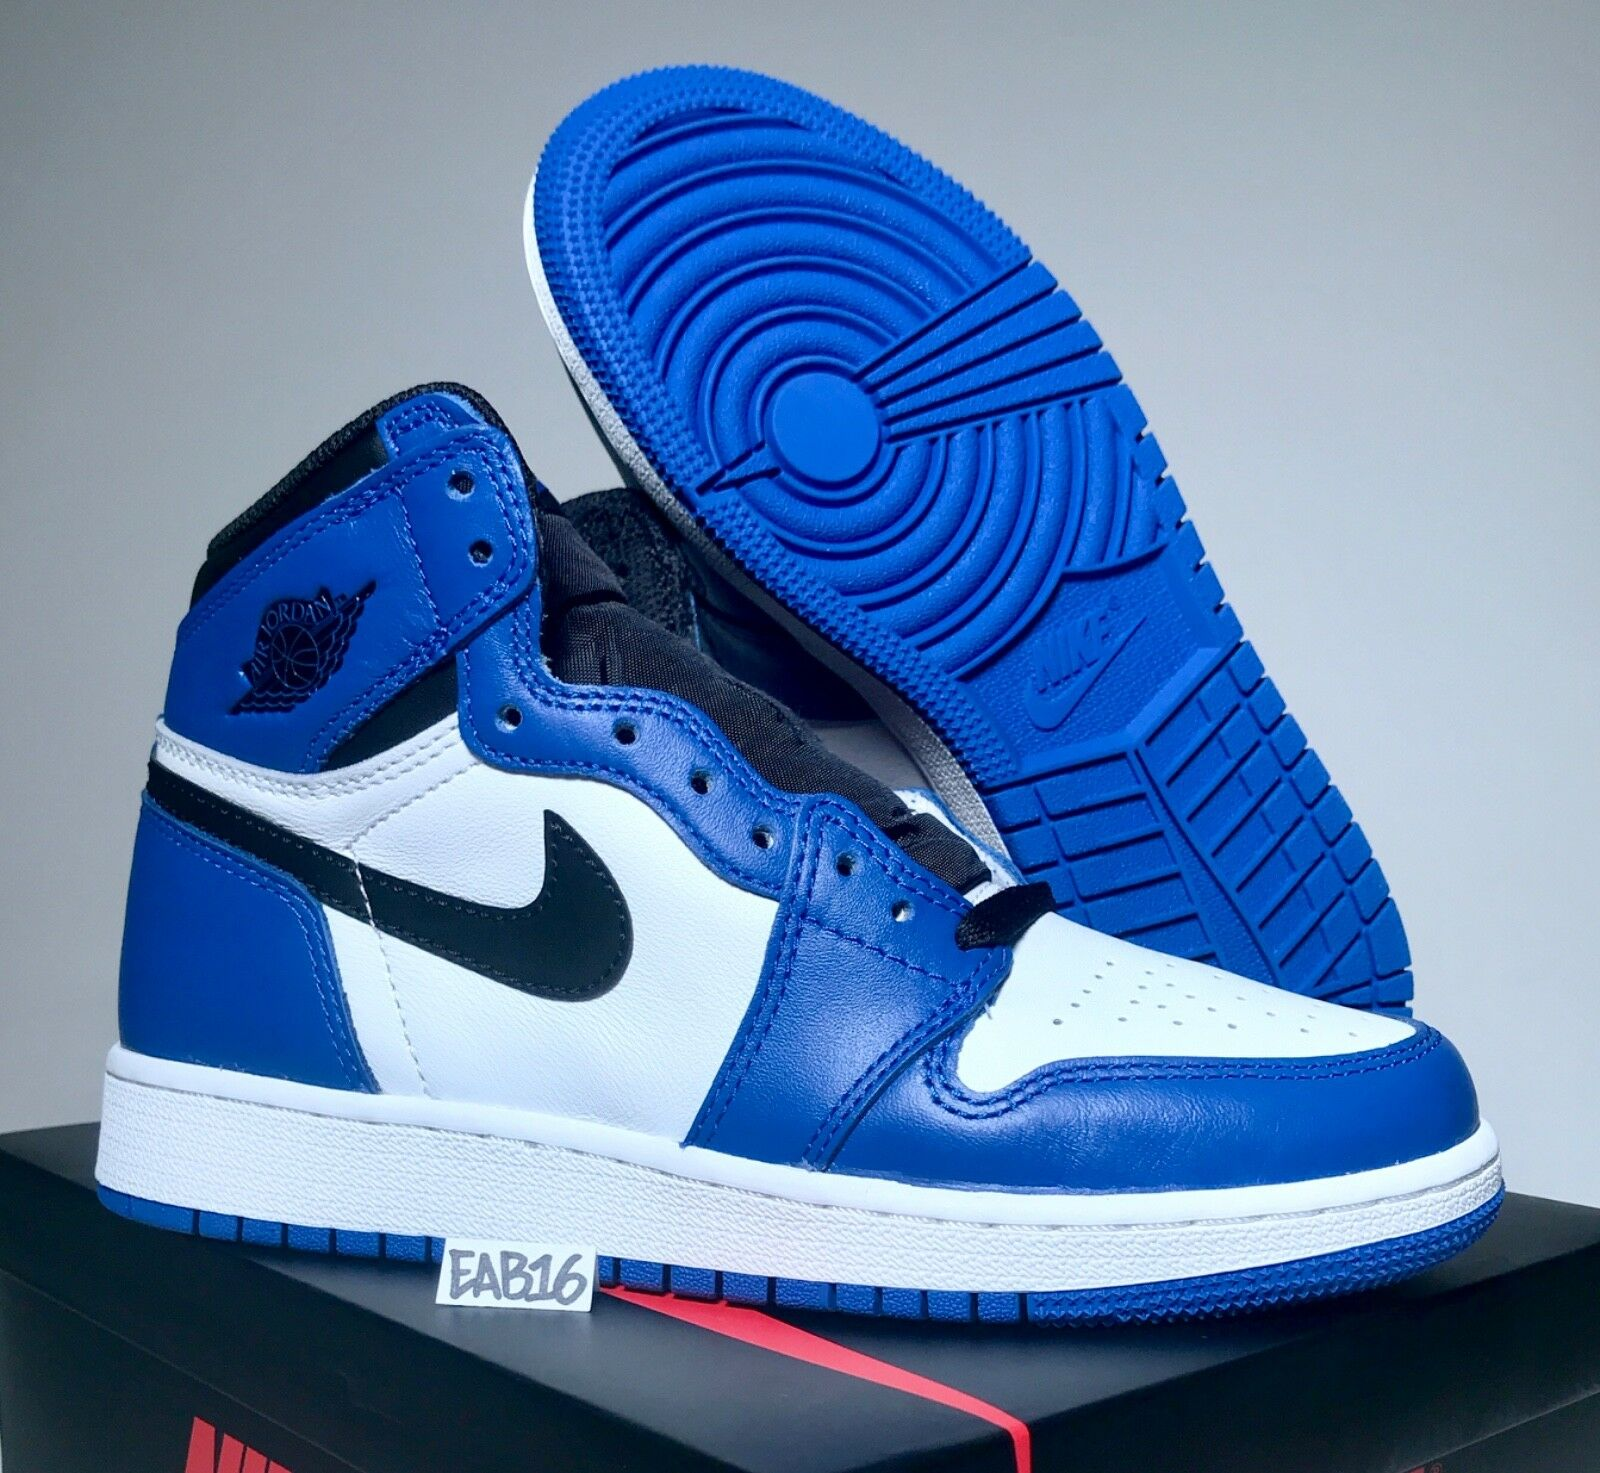 Nike Air Jordan Retro 1 OG BG GAME ROYAL Blue Black and White 555088 403 Size